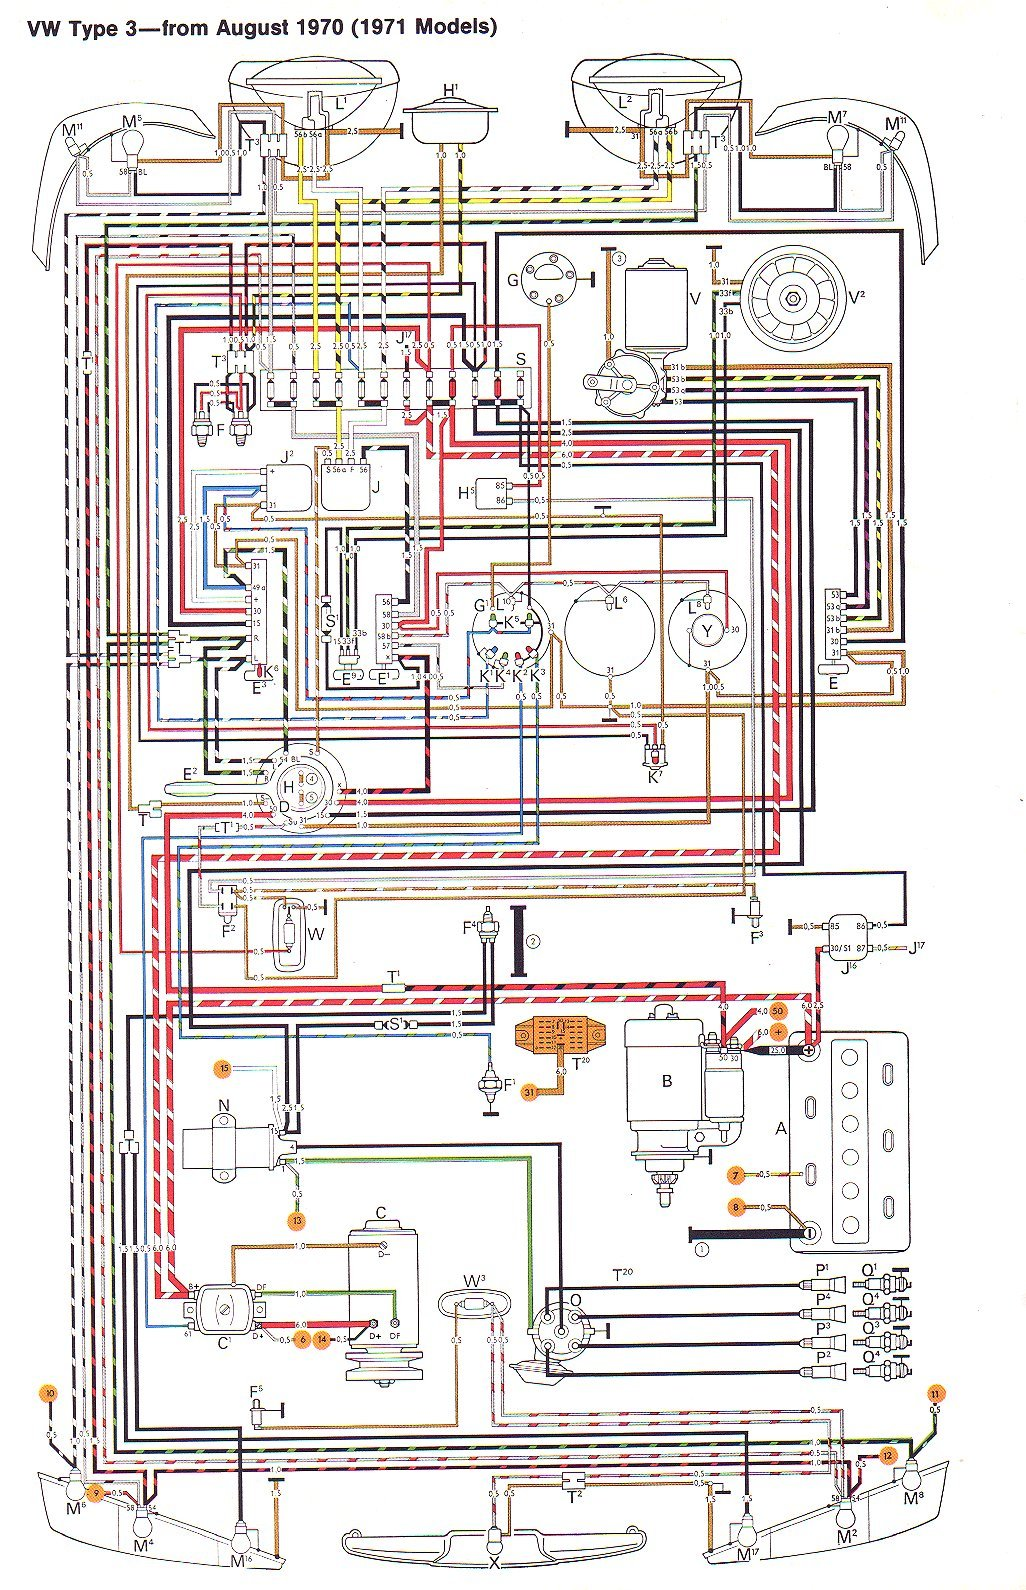 1969 vw starter wiring diagram vw type 3 wiring diagrams